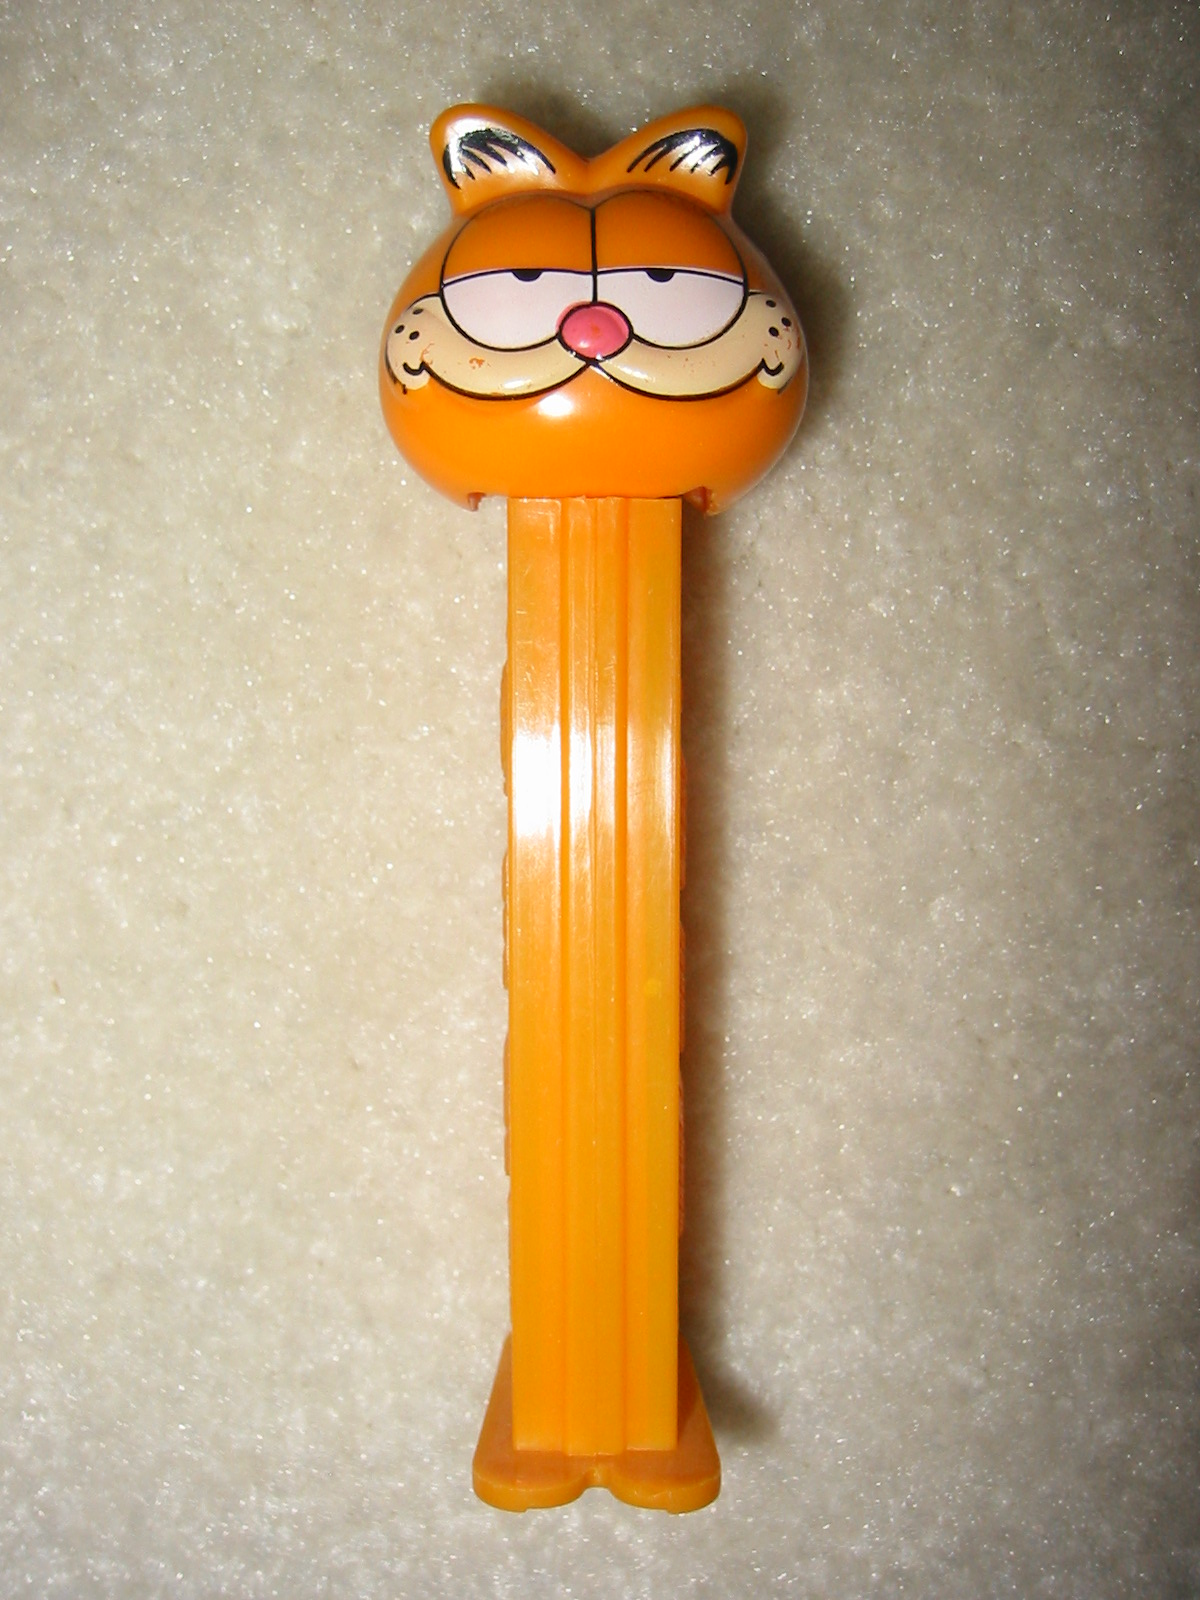 Garield Pez Loose - Original Series